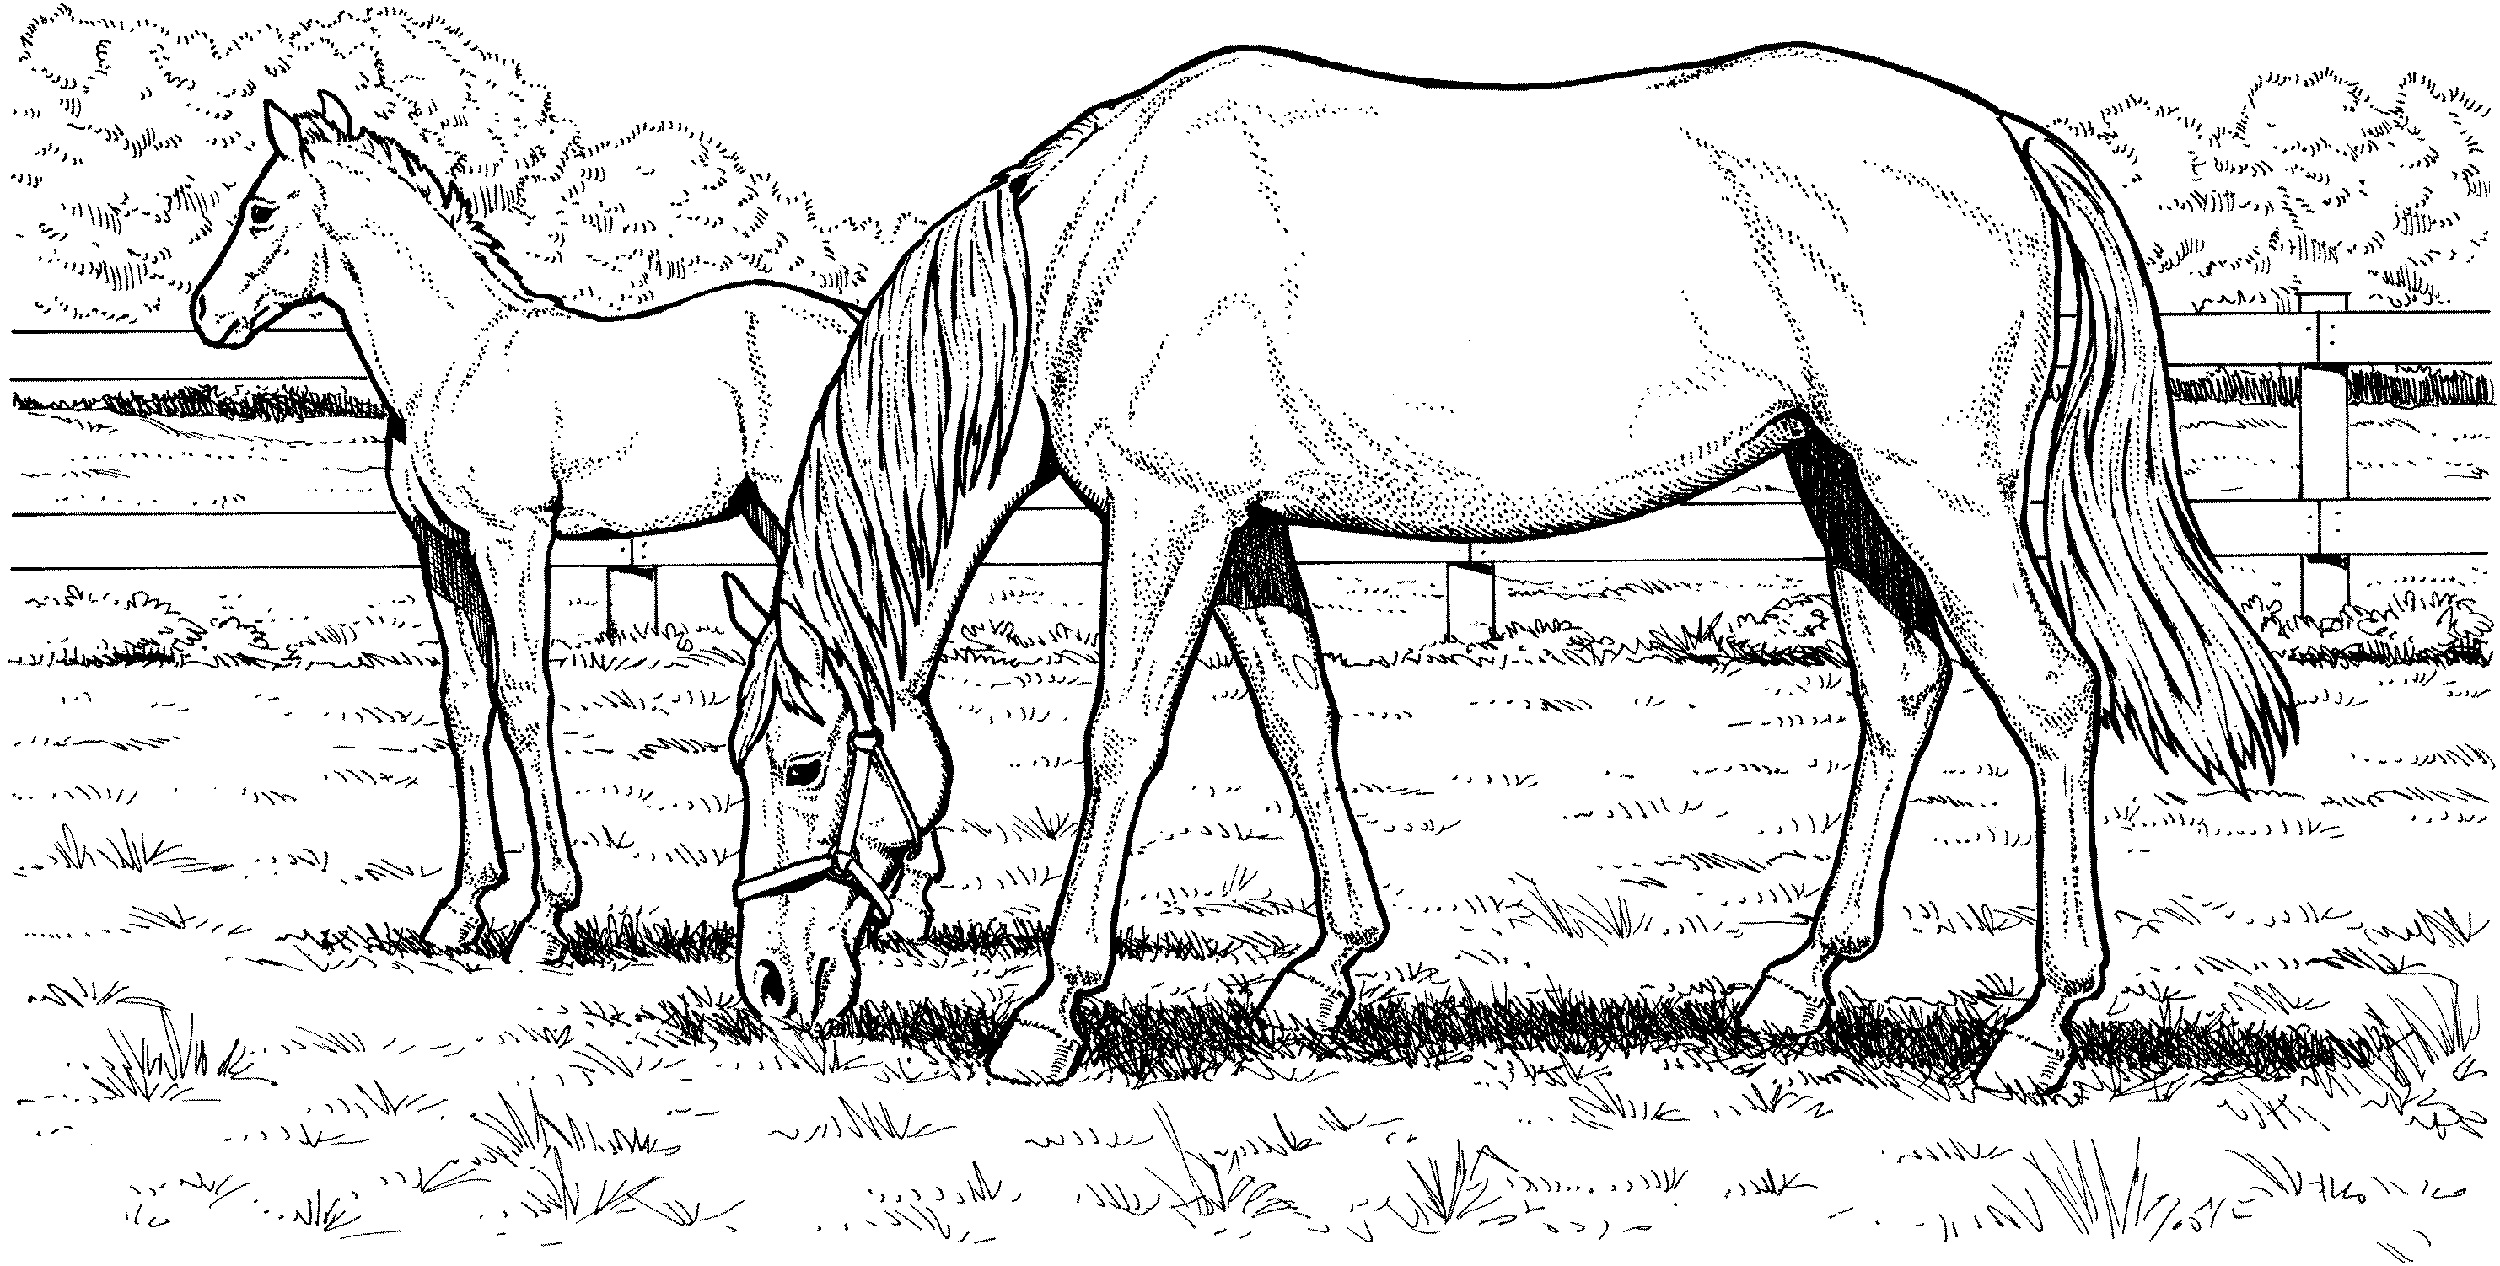 colouring horse horse coloring pages coloringrocks horse colouring